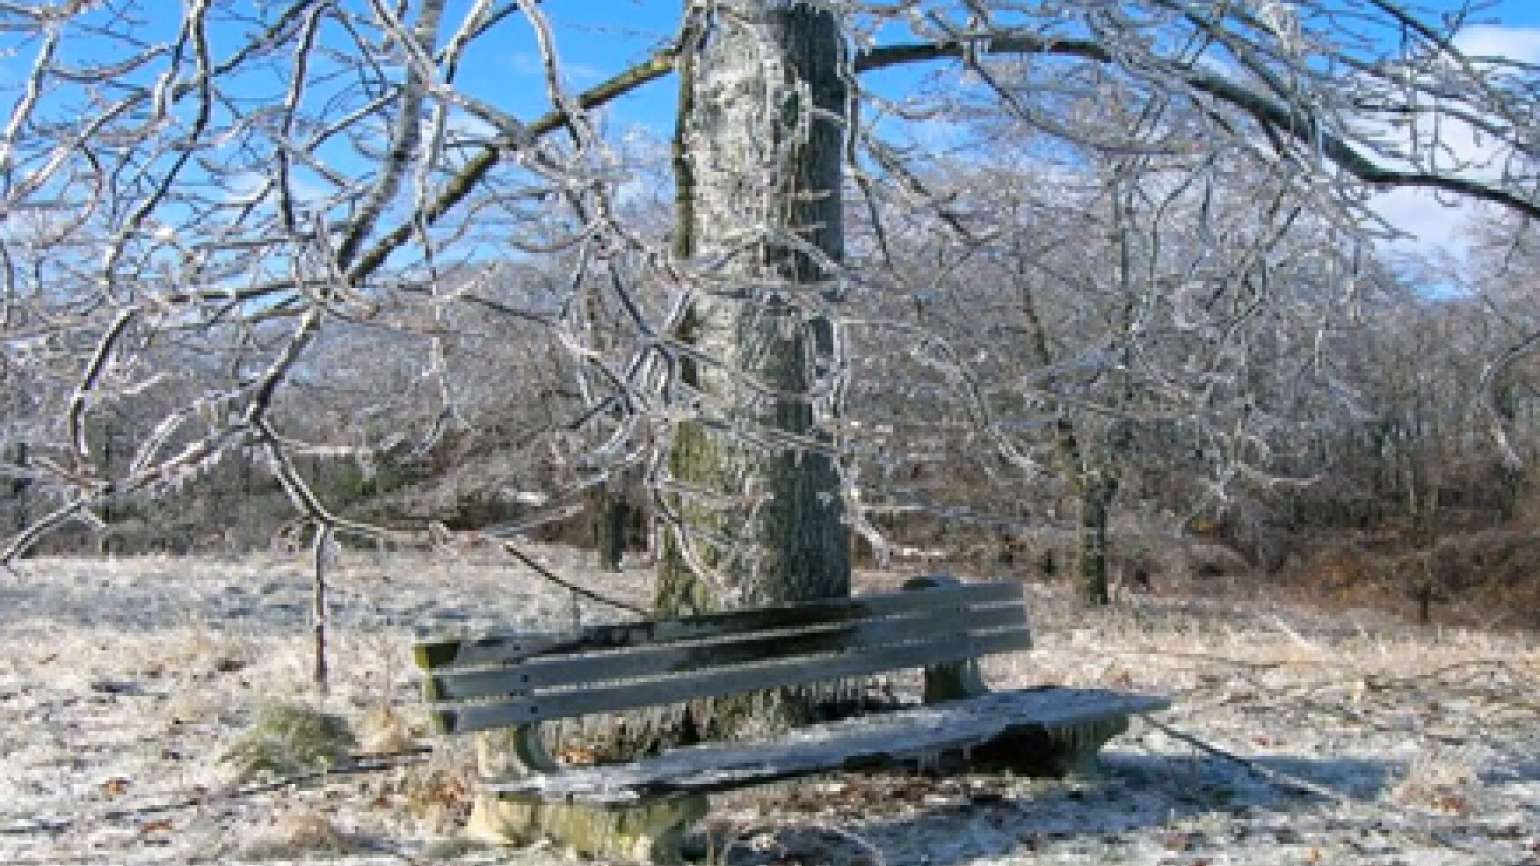 A tree and a park bench encased in ice on a clear winter's day